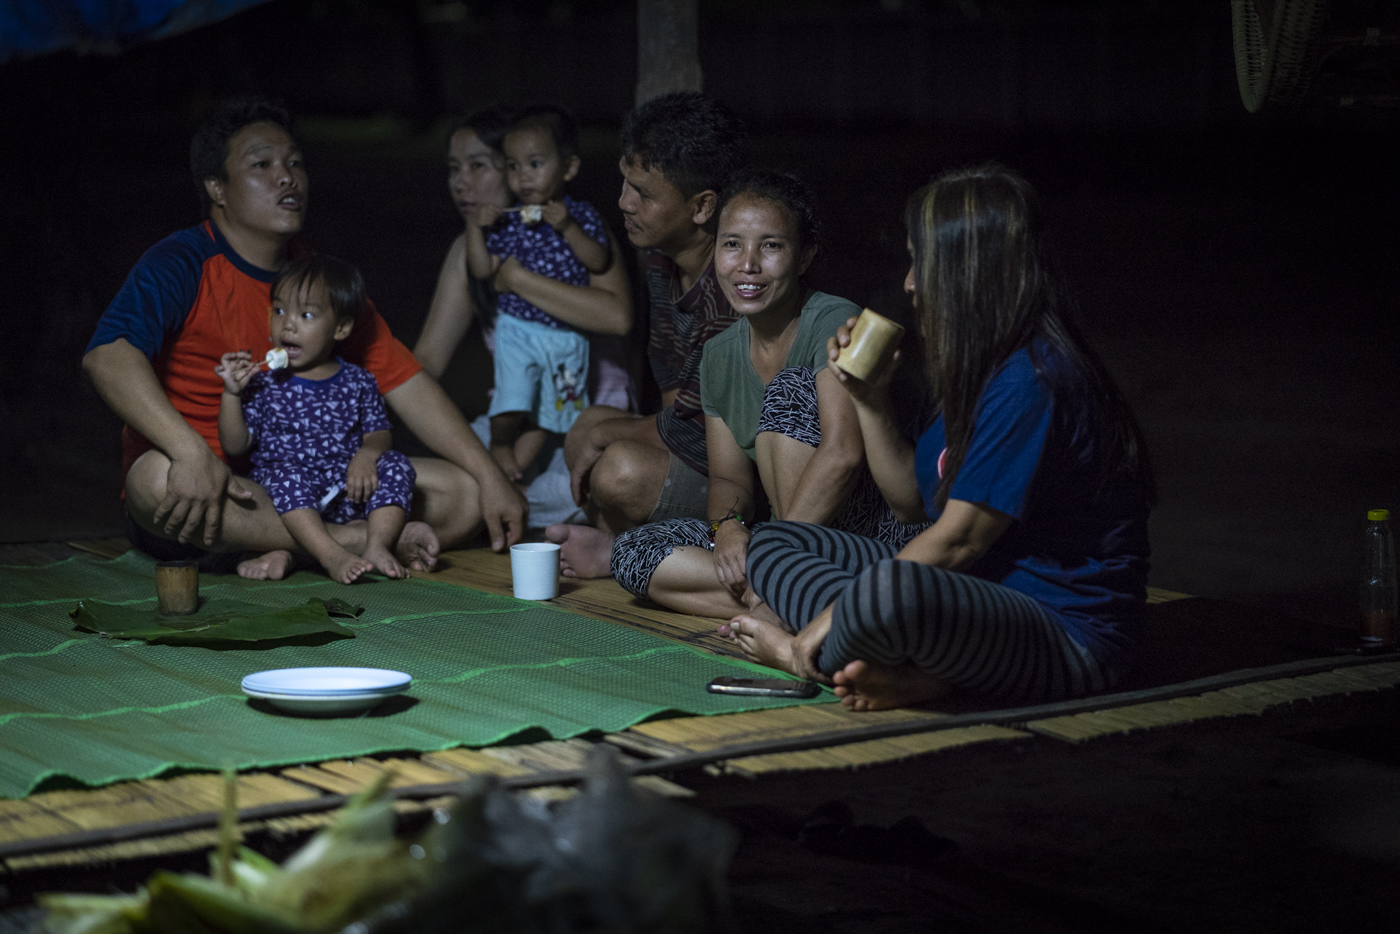 Late night marshmallows and tea with friends under a cabana at our Doi Saket 3 home in Thailand.